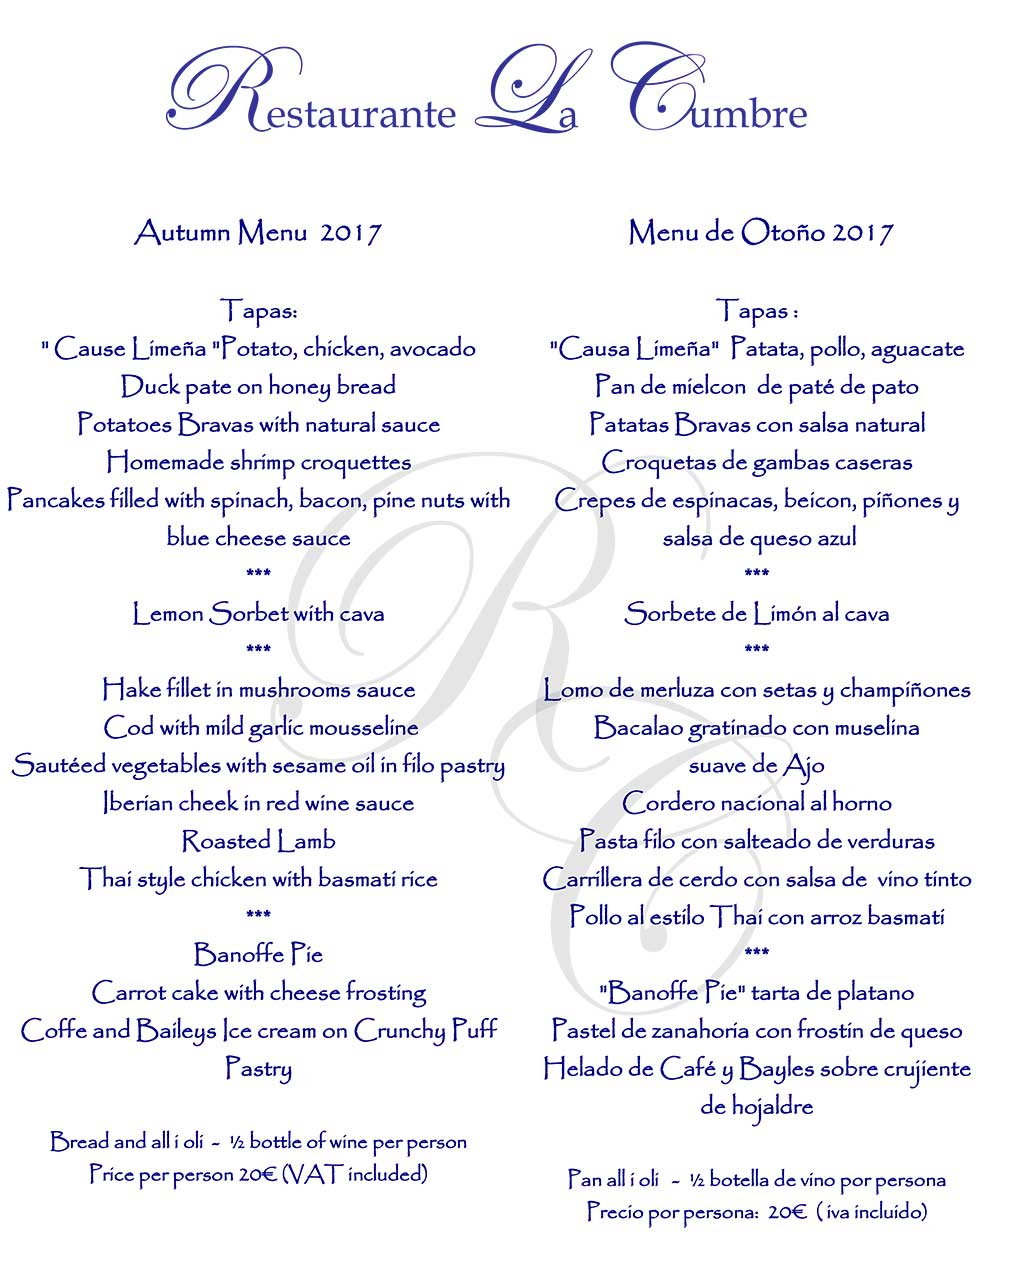 Autumn Menu at La Cumbre Restaurant